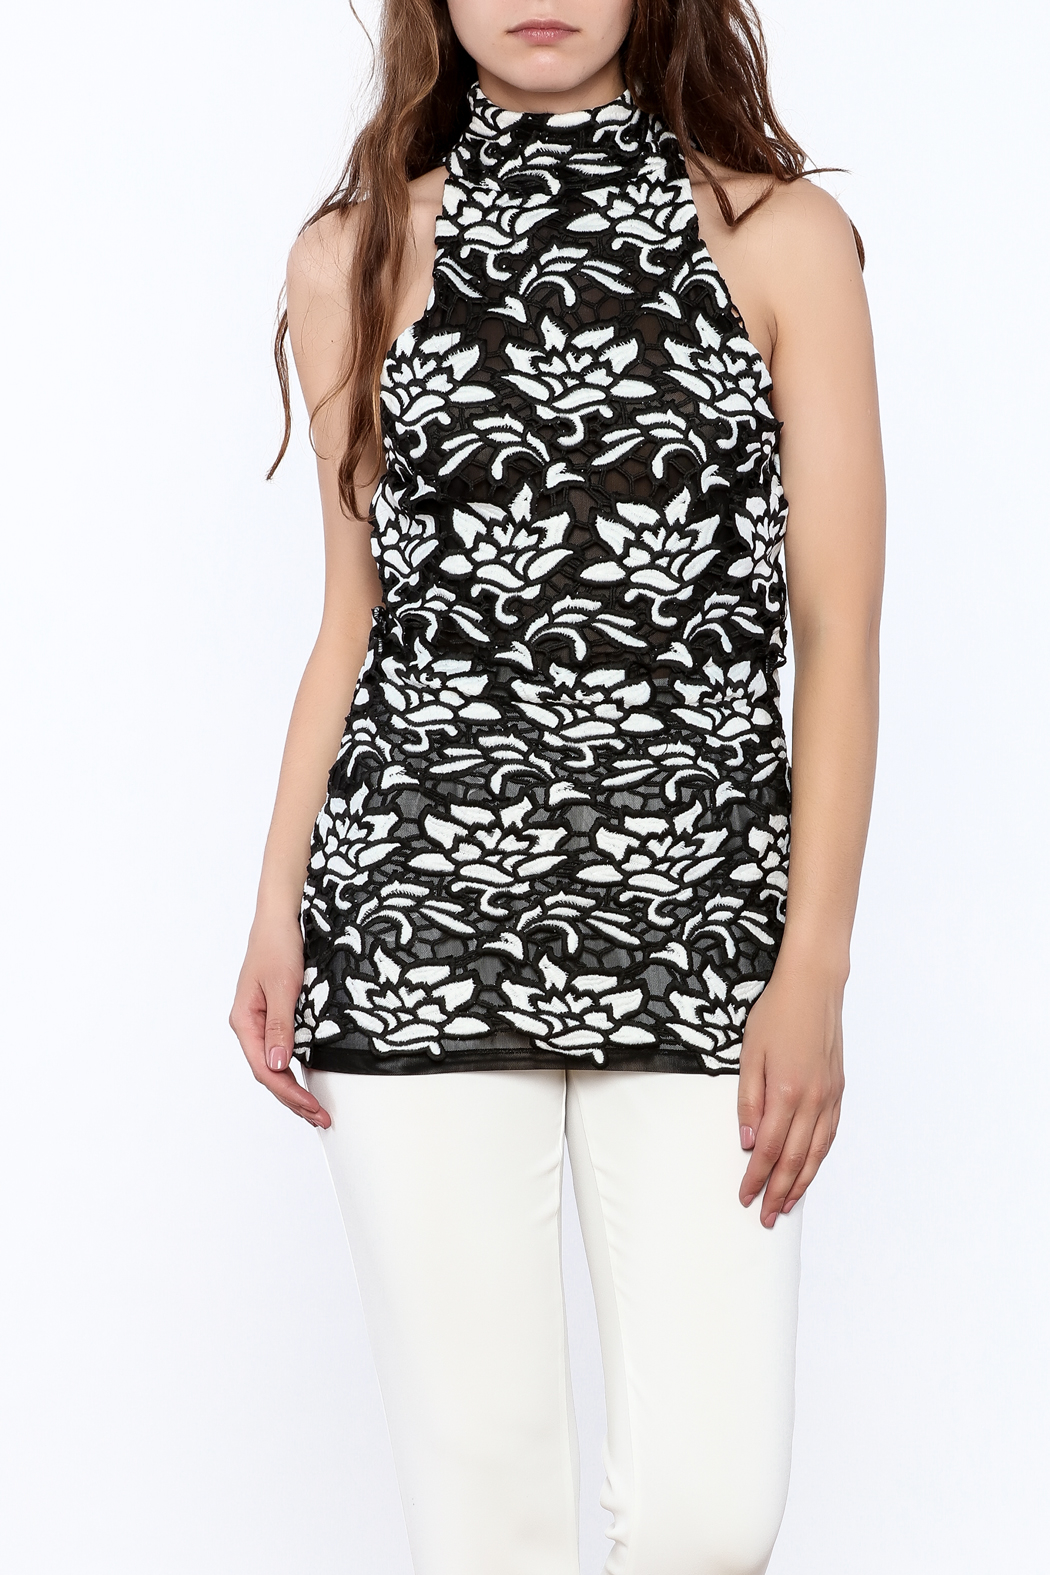 Julian Chang Black Floral Sleeveless Top - Front Cropped Image